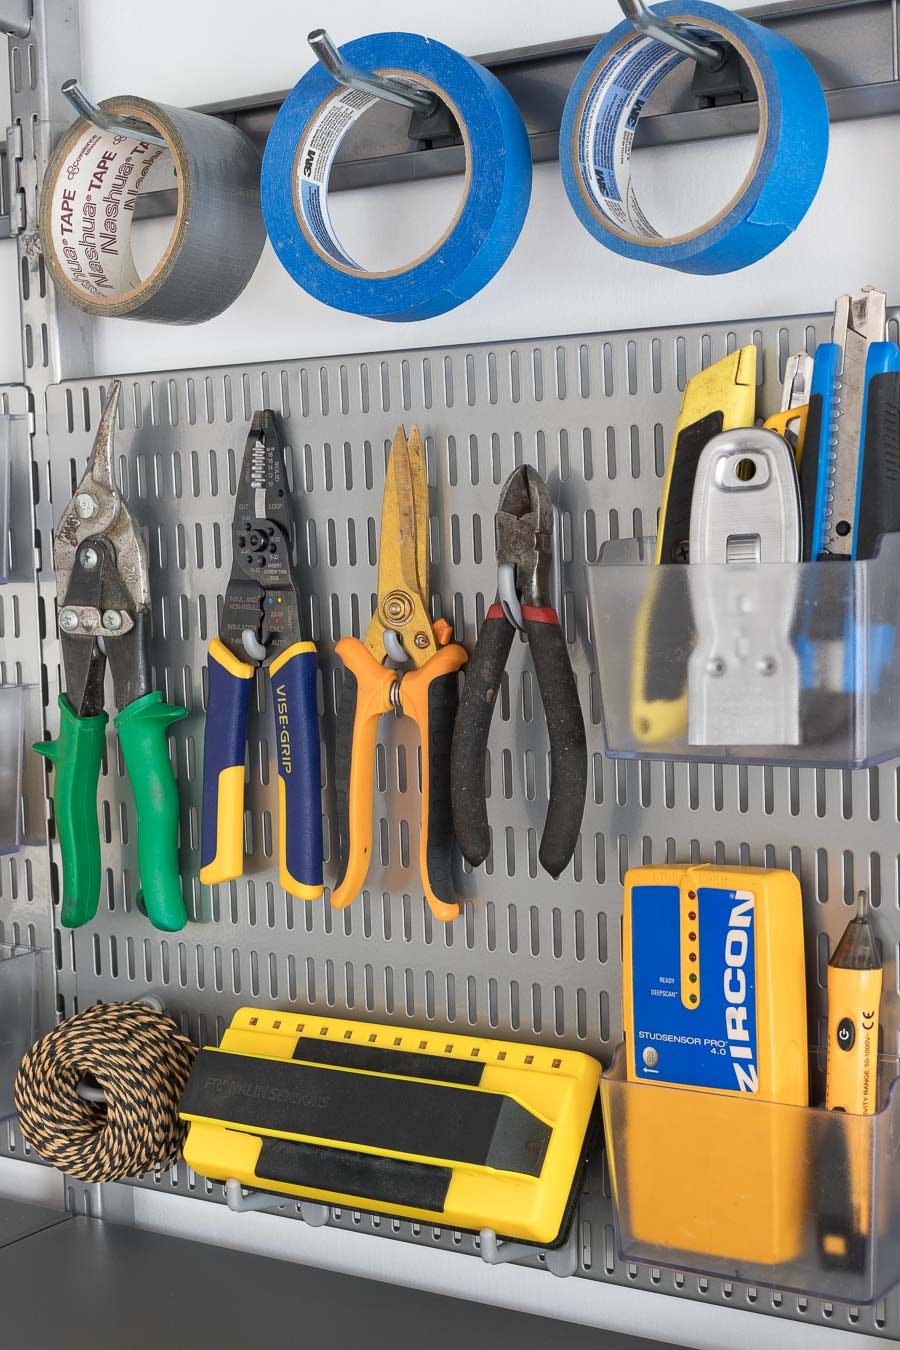 Garage organization goals! Such a smart way to organize your tools so they're super neat and easy to grab (using Elfa's utility boards and hooks!)